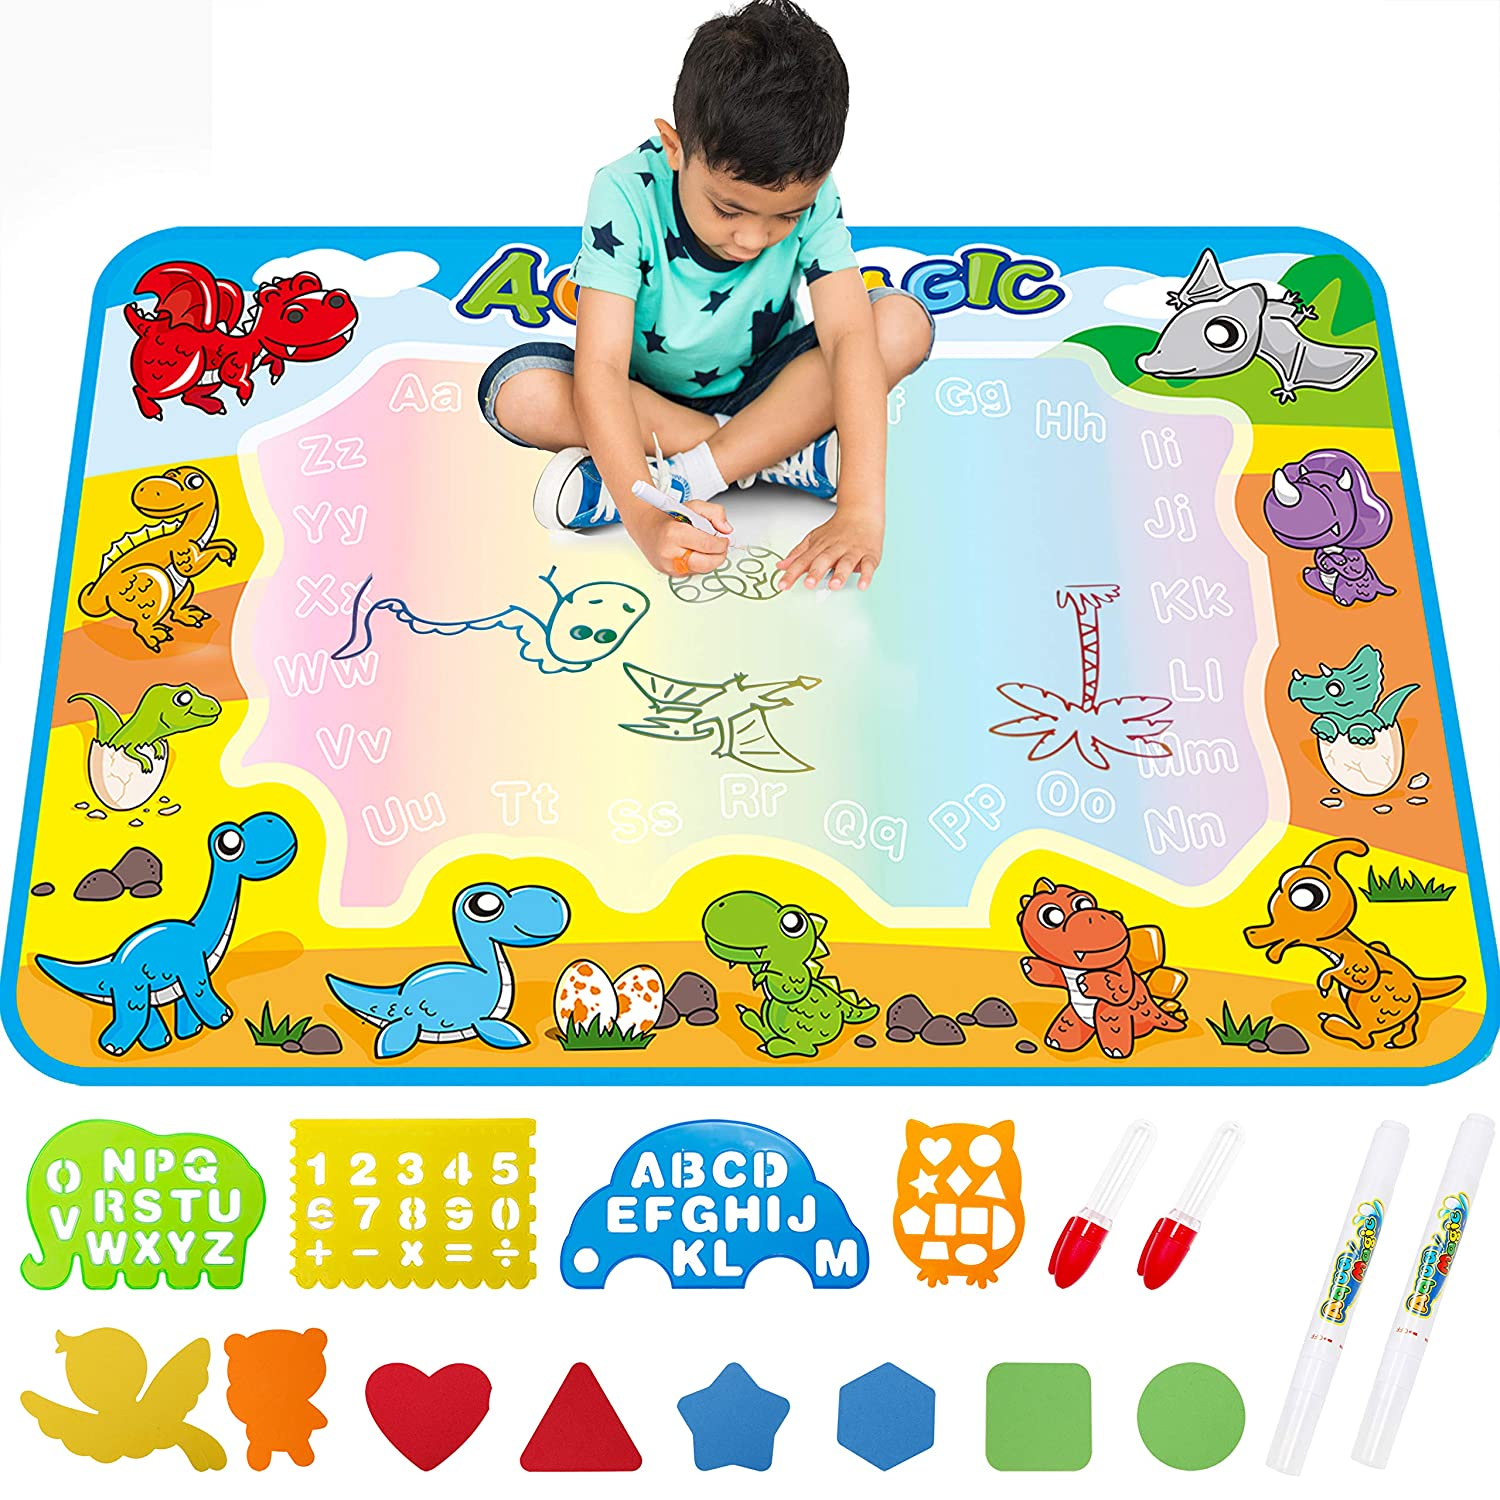 Large AquaDoodle Drawing Mat for Kids - Free to Fly Water Painting Writing Doodle Board Toy Color Aqua Magic Mat Bring Magic Pens Educational Travel Toys Gift for Boys Girls Toddlers Age 2 3 4 5 6